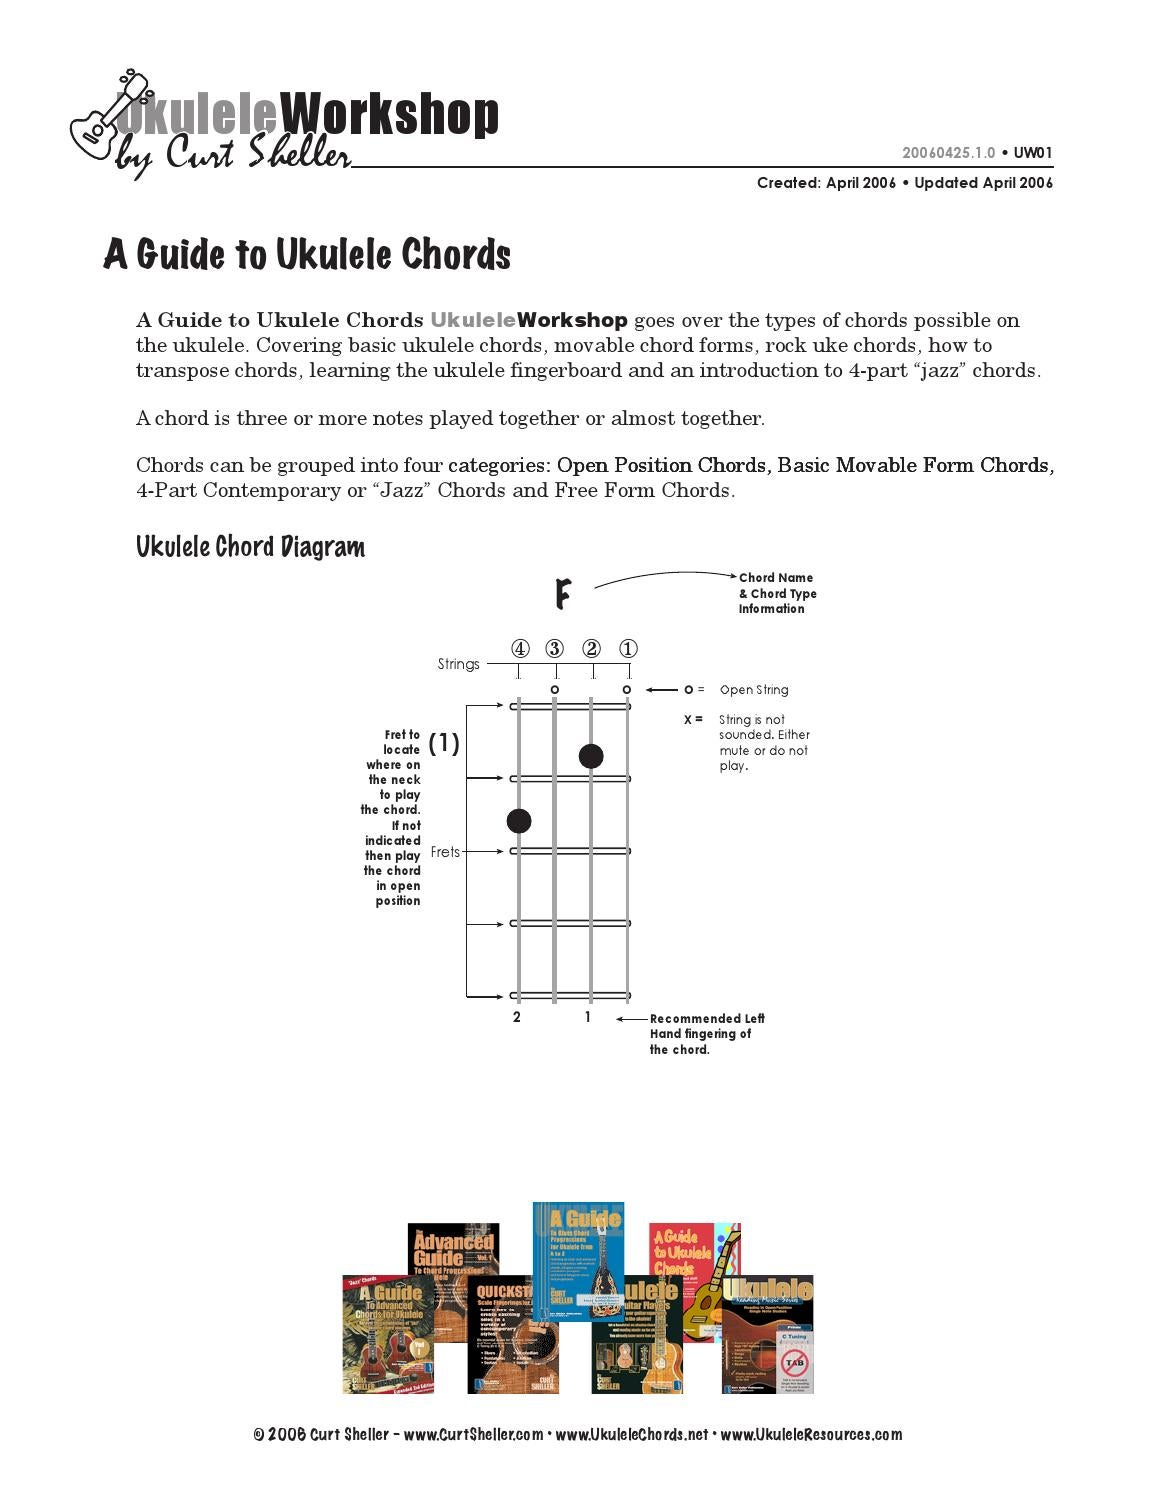 A guide to ukulele chords curt sheller by qrispe issuu hexwebz Images